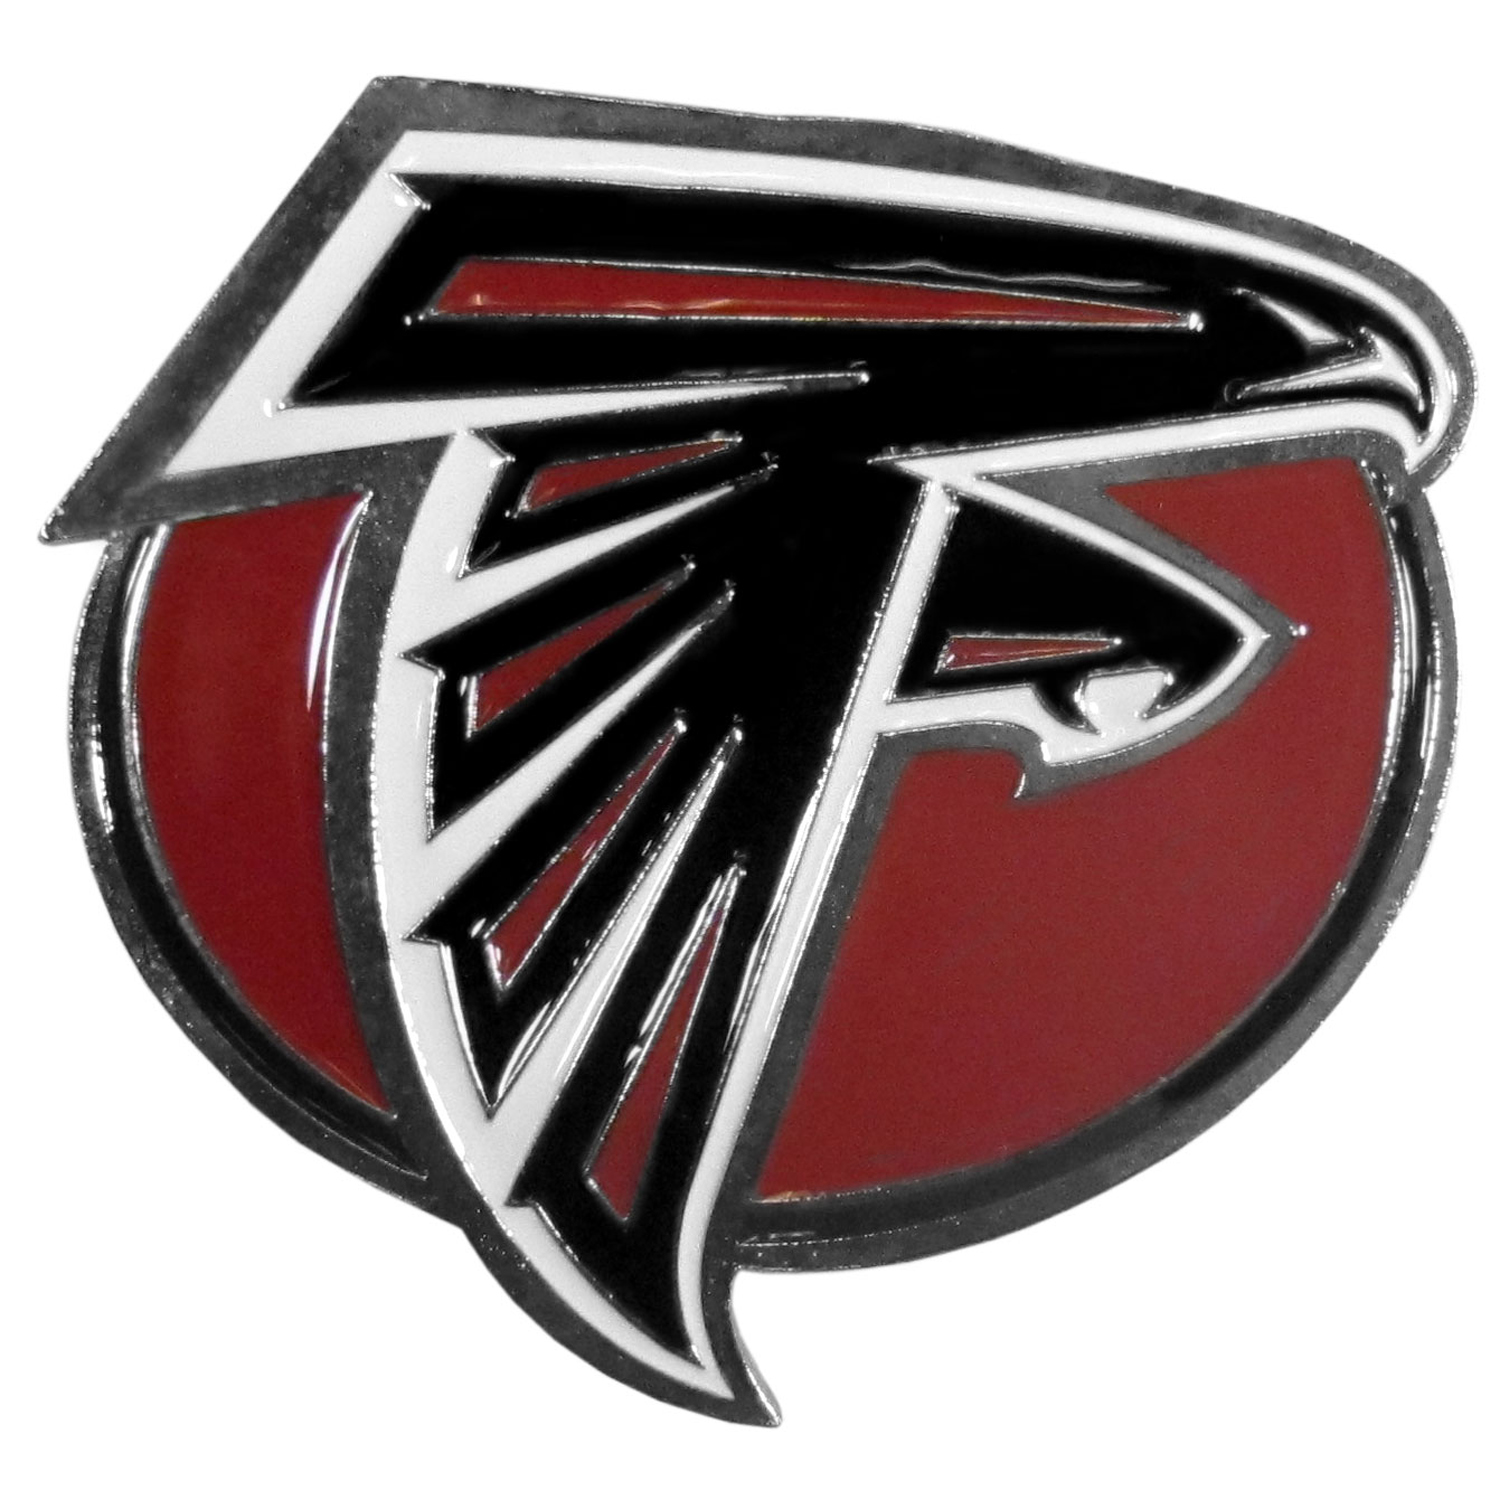 Atlanta Falcons Hitch Cover Class III Wire Plugs - Our lighter weight, full-metal hitches are still tougher than your average hitch cover at 1/8 of an inch thick. The heavy-duty cast zinc hitch plate feature the Atlanta Falcons logo with enameled detail. The wire hitch plugs are included for the class III hitch receivers.